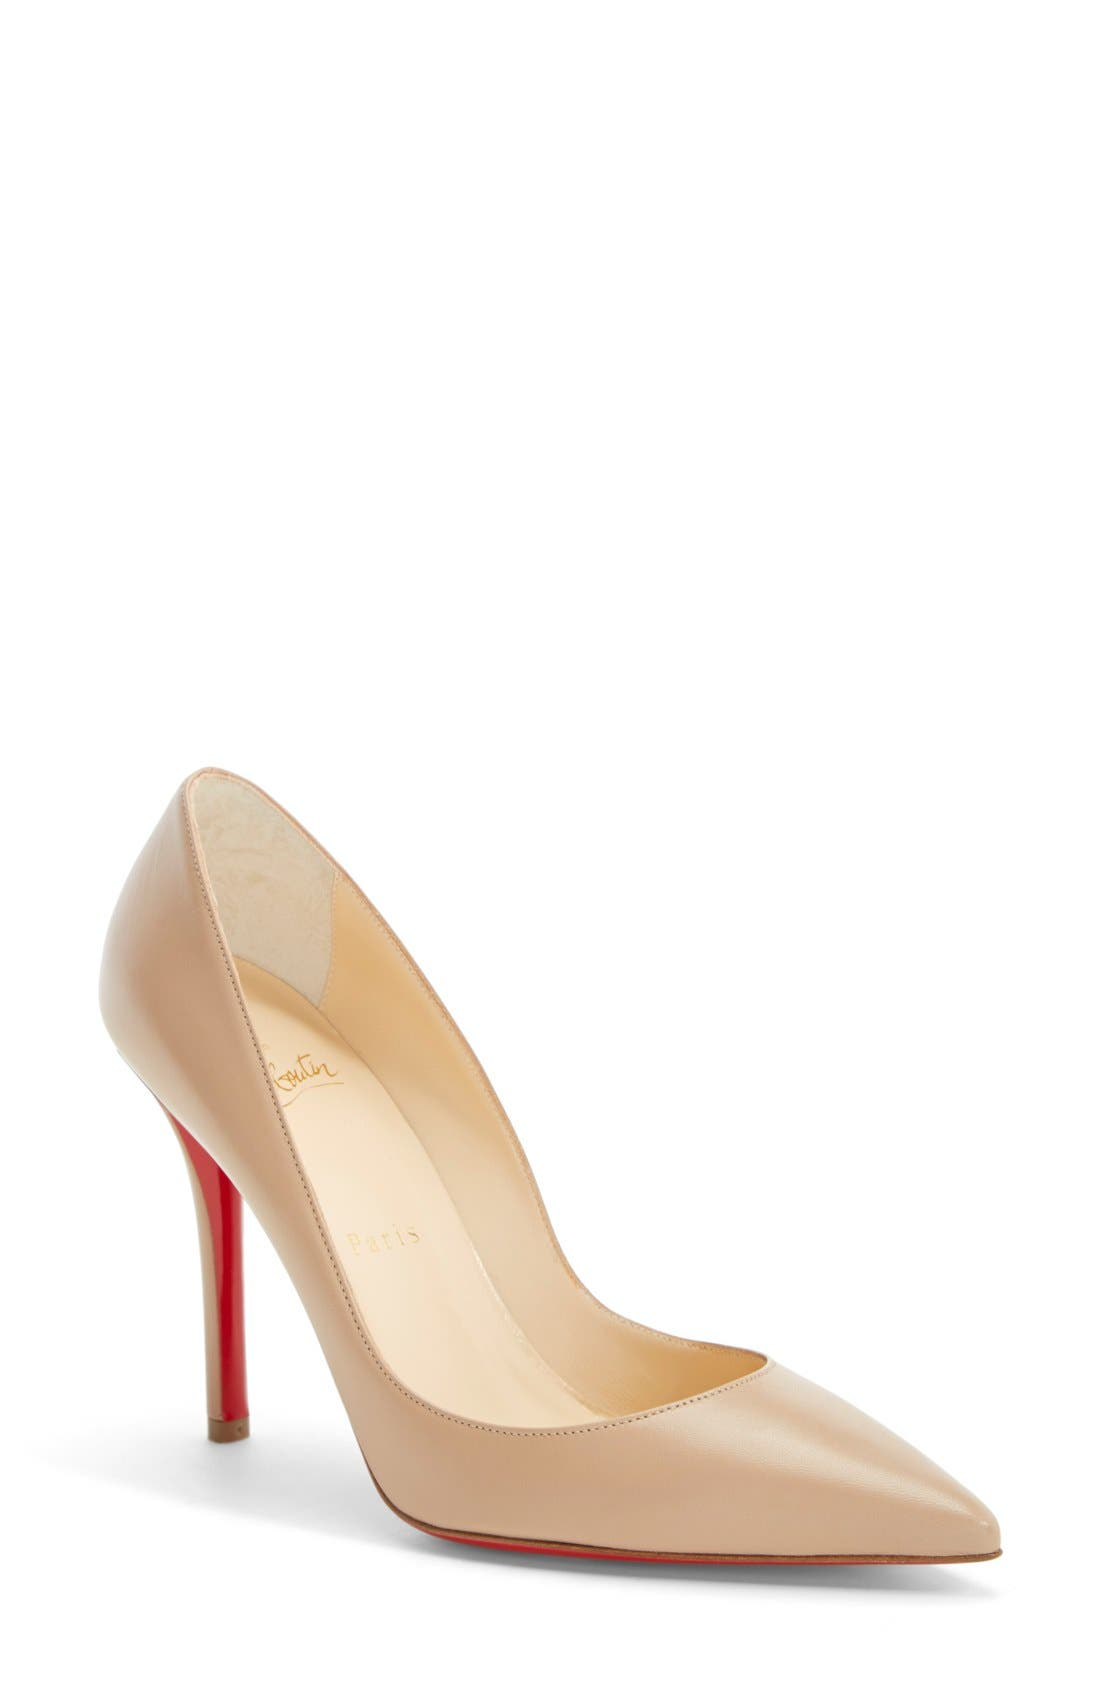 Main Image - Christian Louboutin 'Apostrophy' Pointy Toe Pump